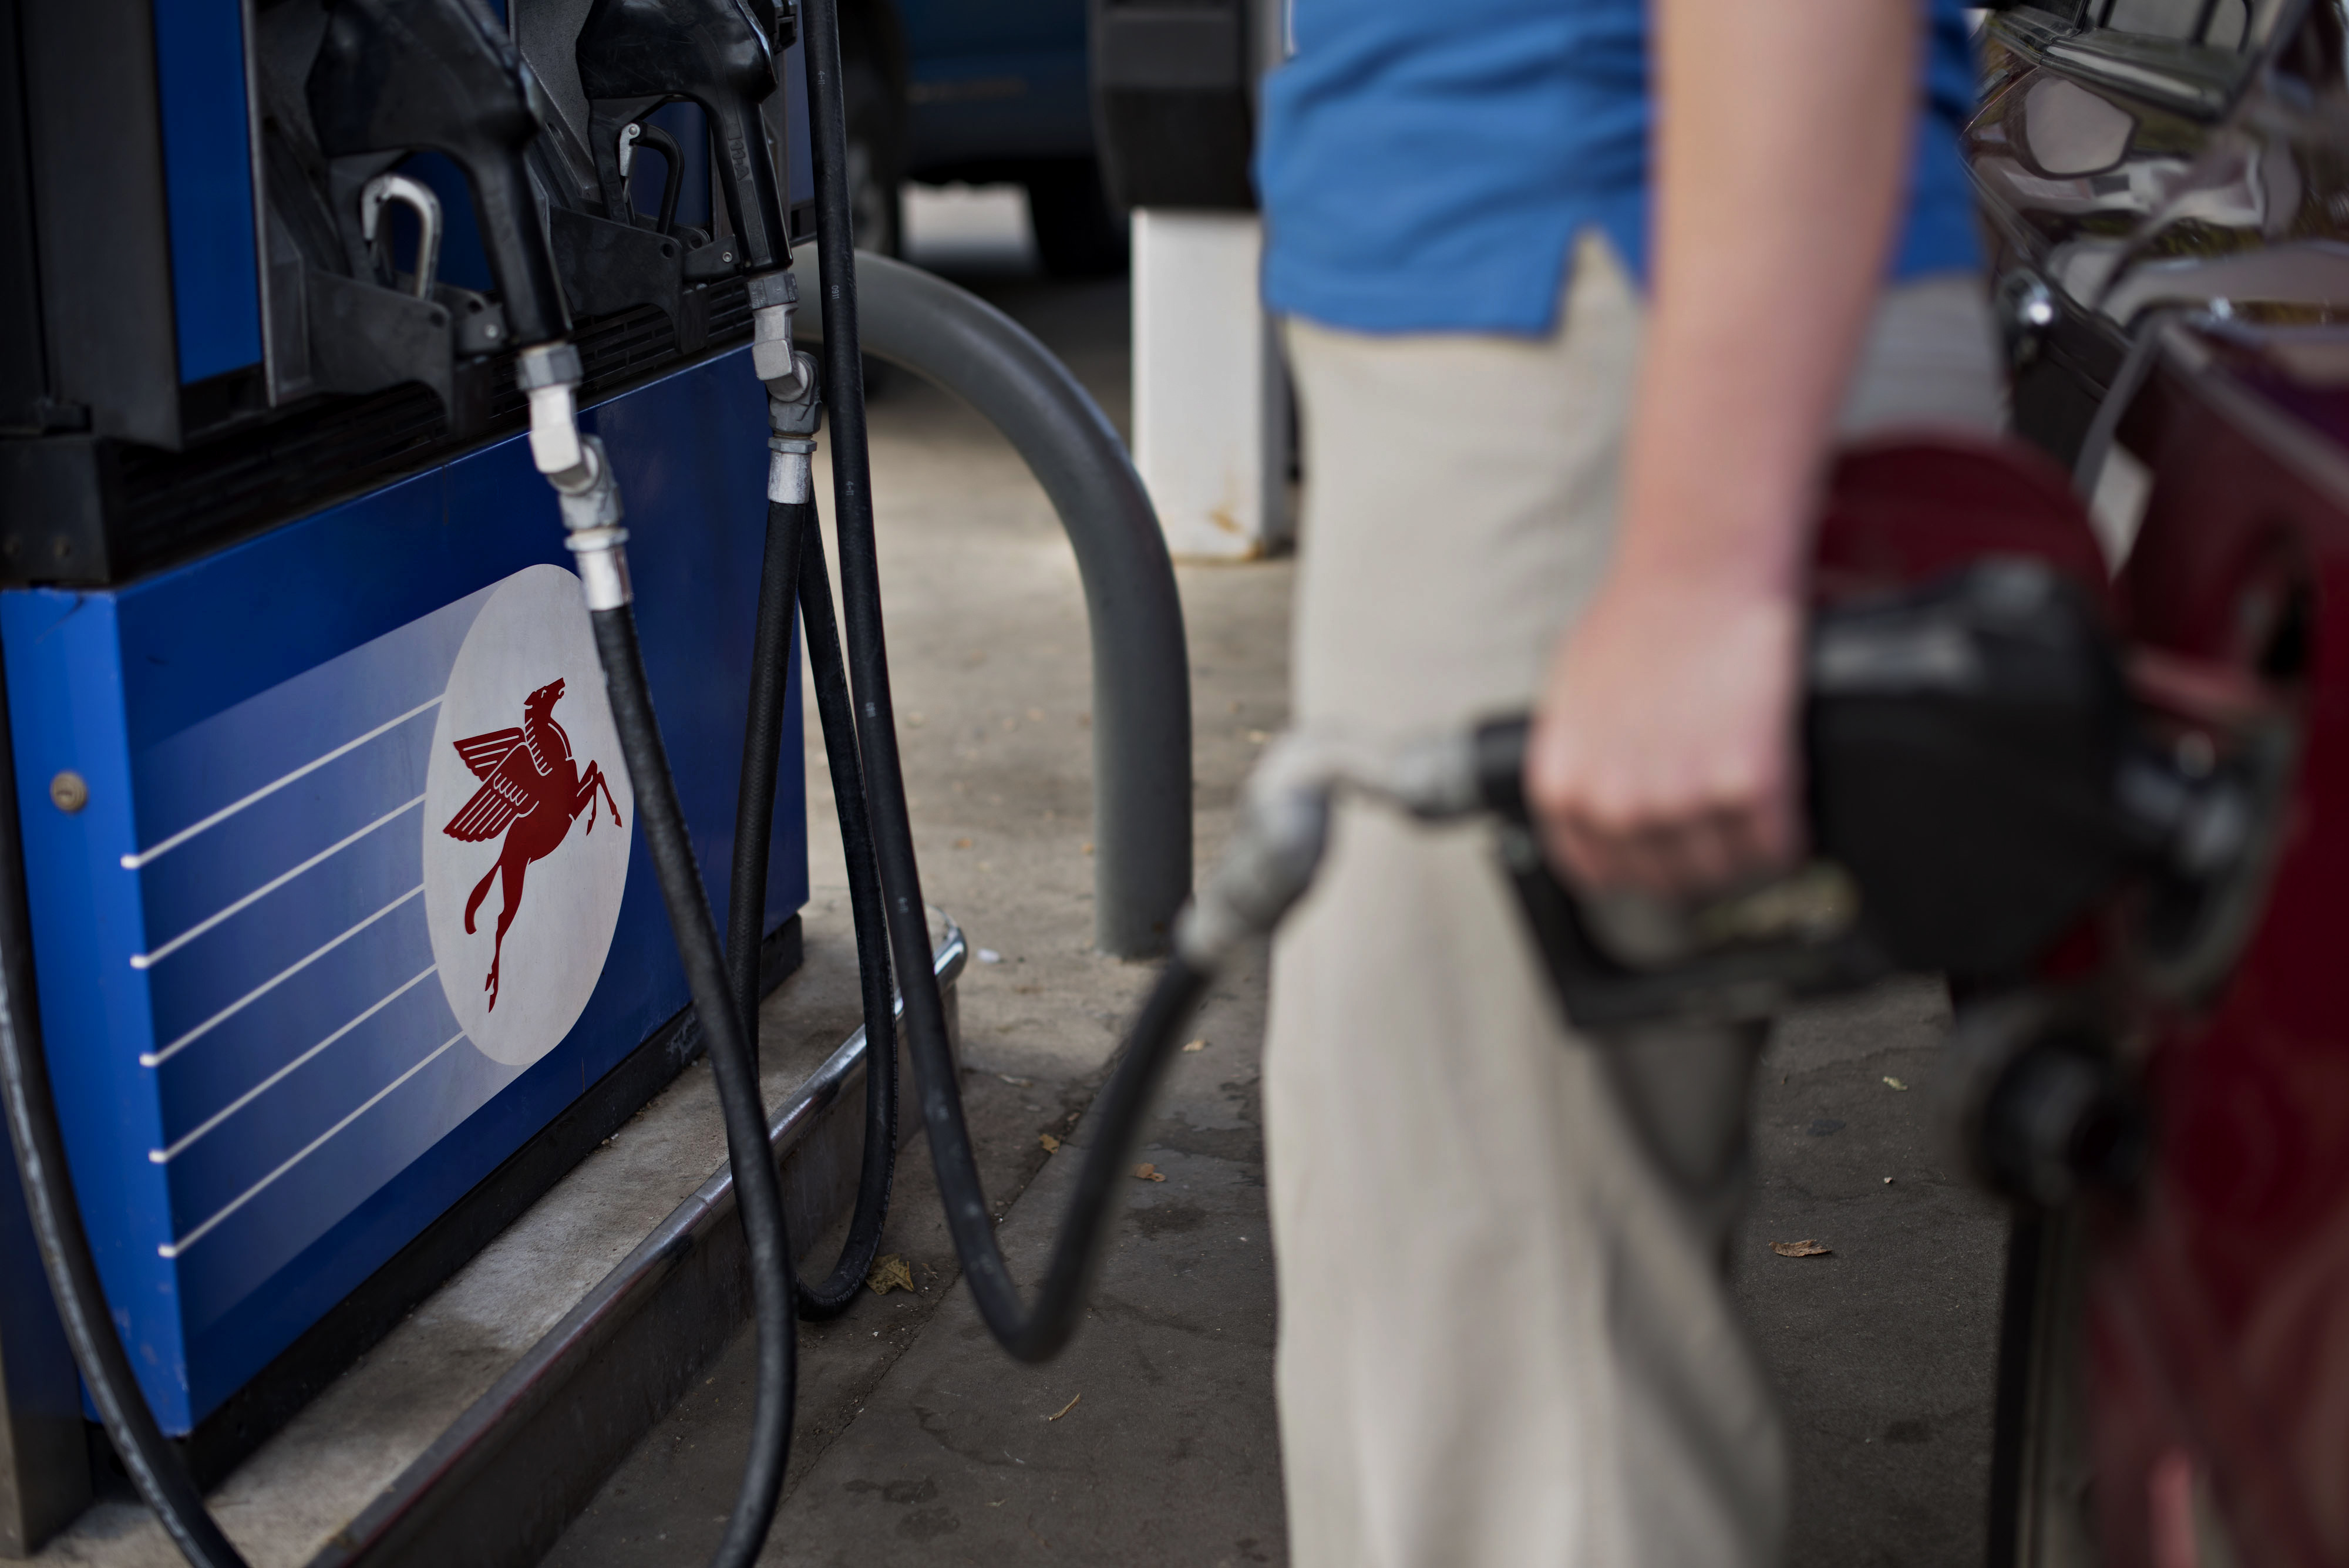 Exxon Mobil Corp. Gas Stations Ahead Of Earnings Figures